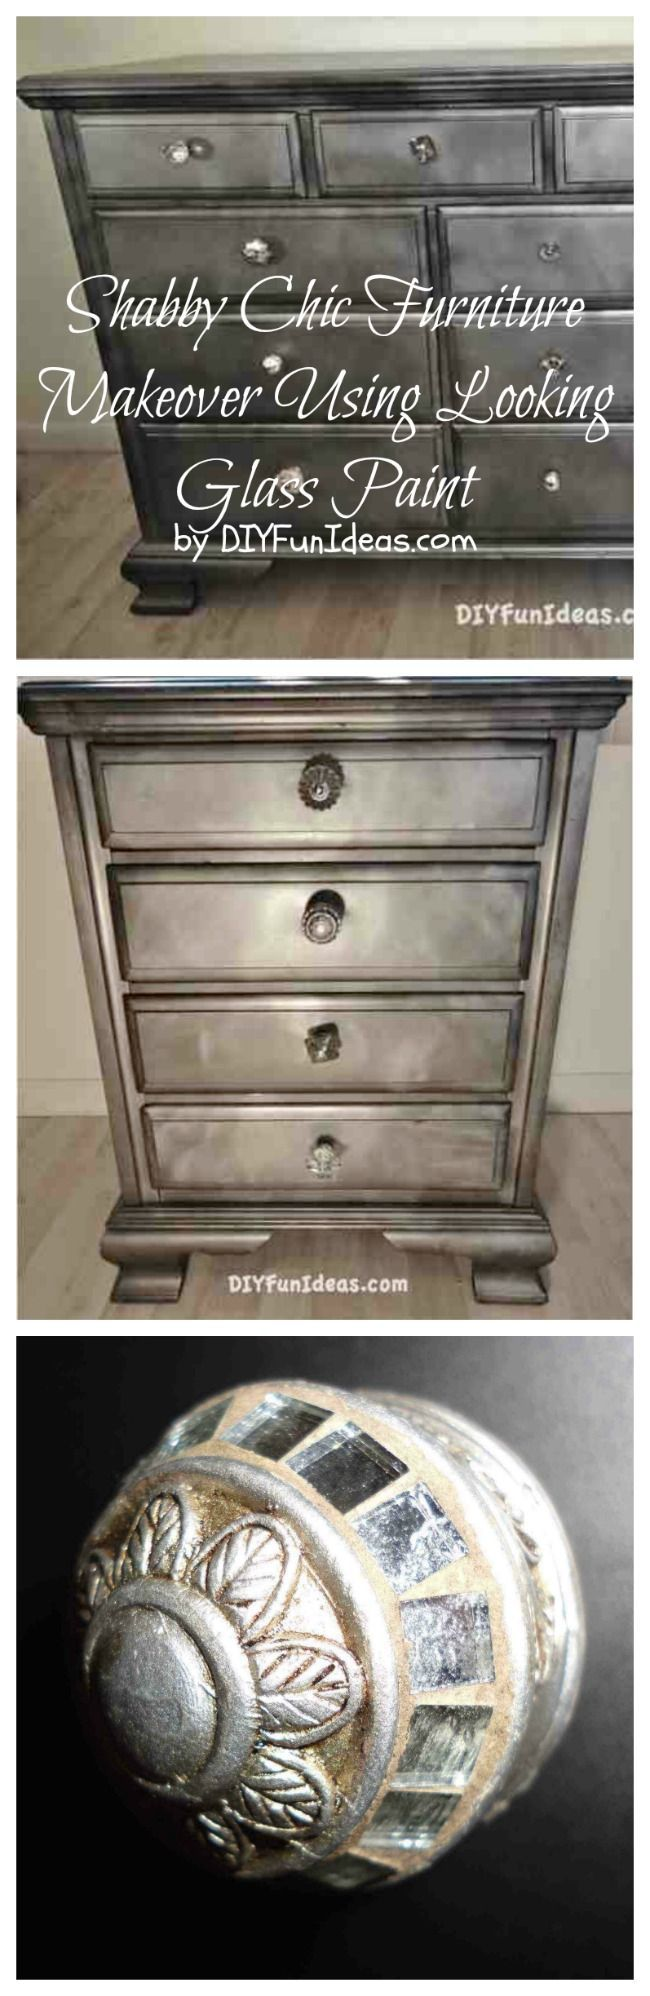 Ridiculously Awesome Shabby Chic Furniture Makeover Using Krylon Looking Glass Paint.